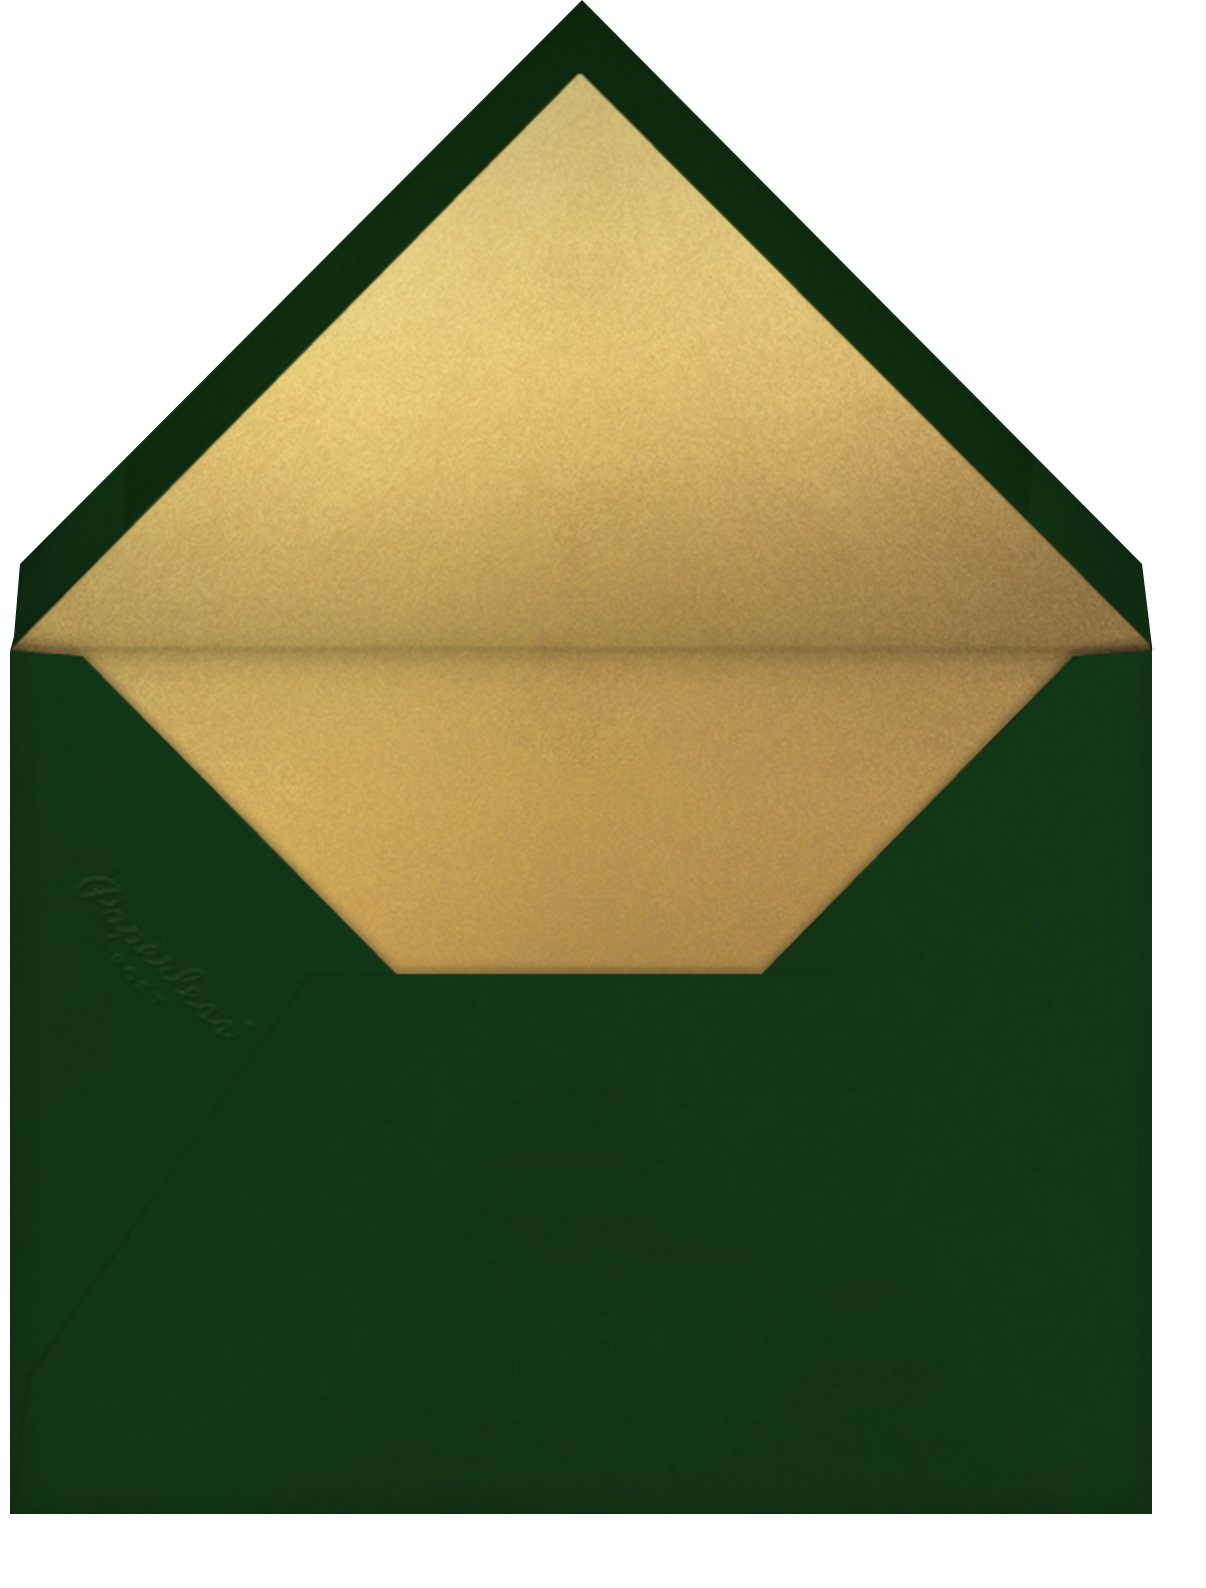 It's Raining Gifts - Paperless Post - Christmas party - envelope back